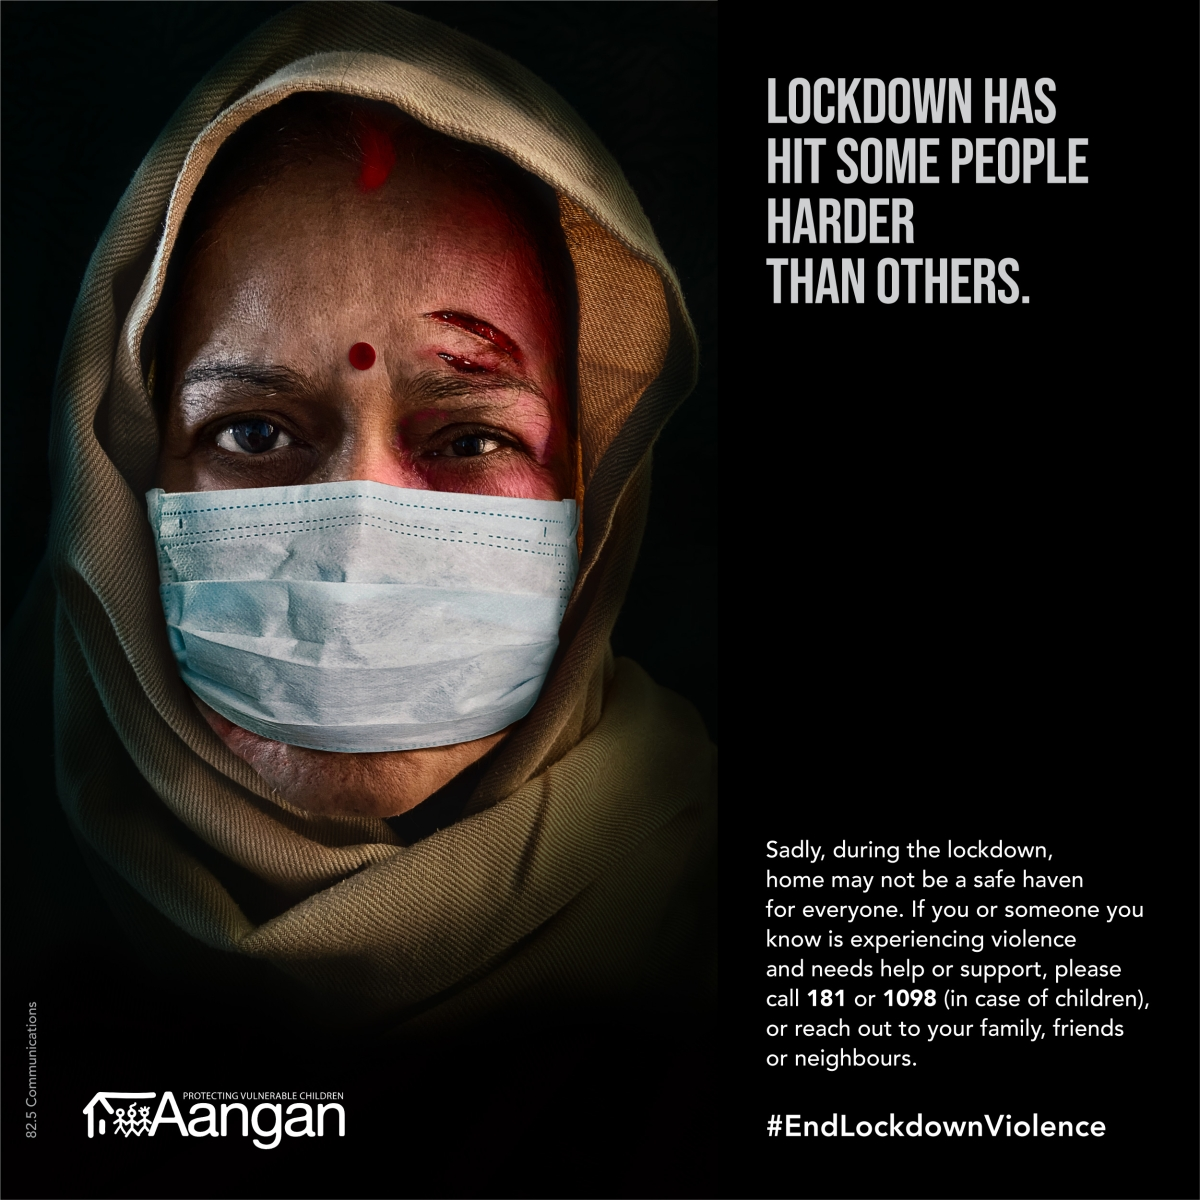 Domestic abuse: The hidden reality of locked-down India